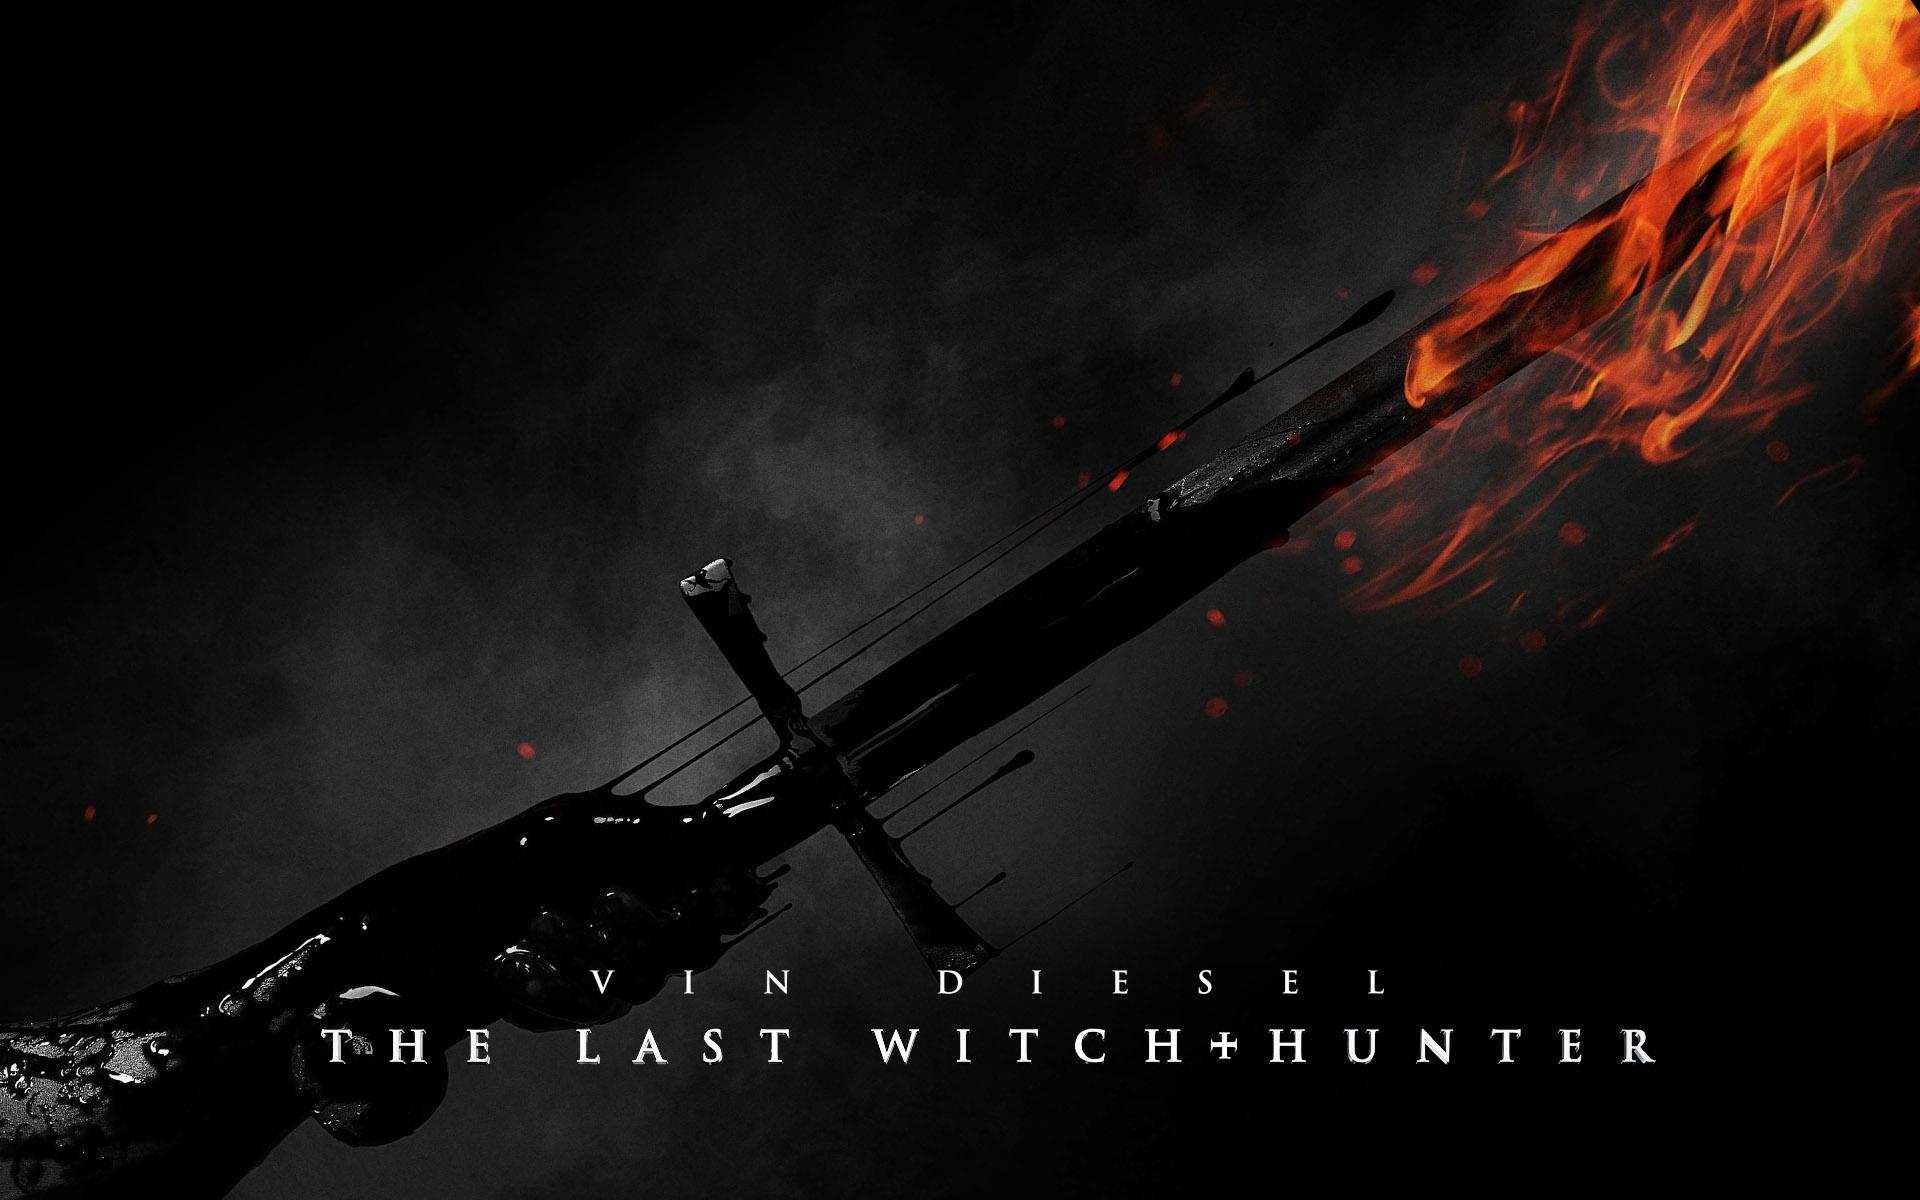 The Last Witch Hunter wallpapers for desktop